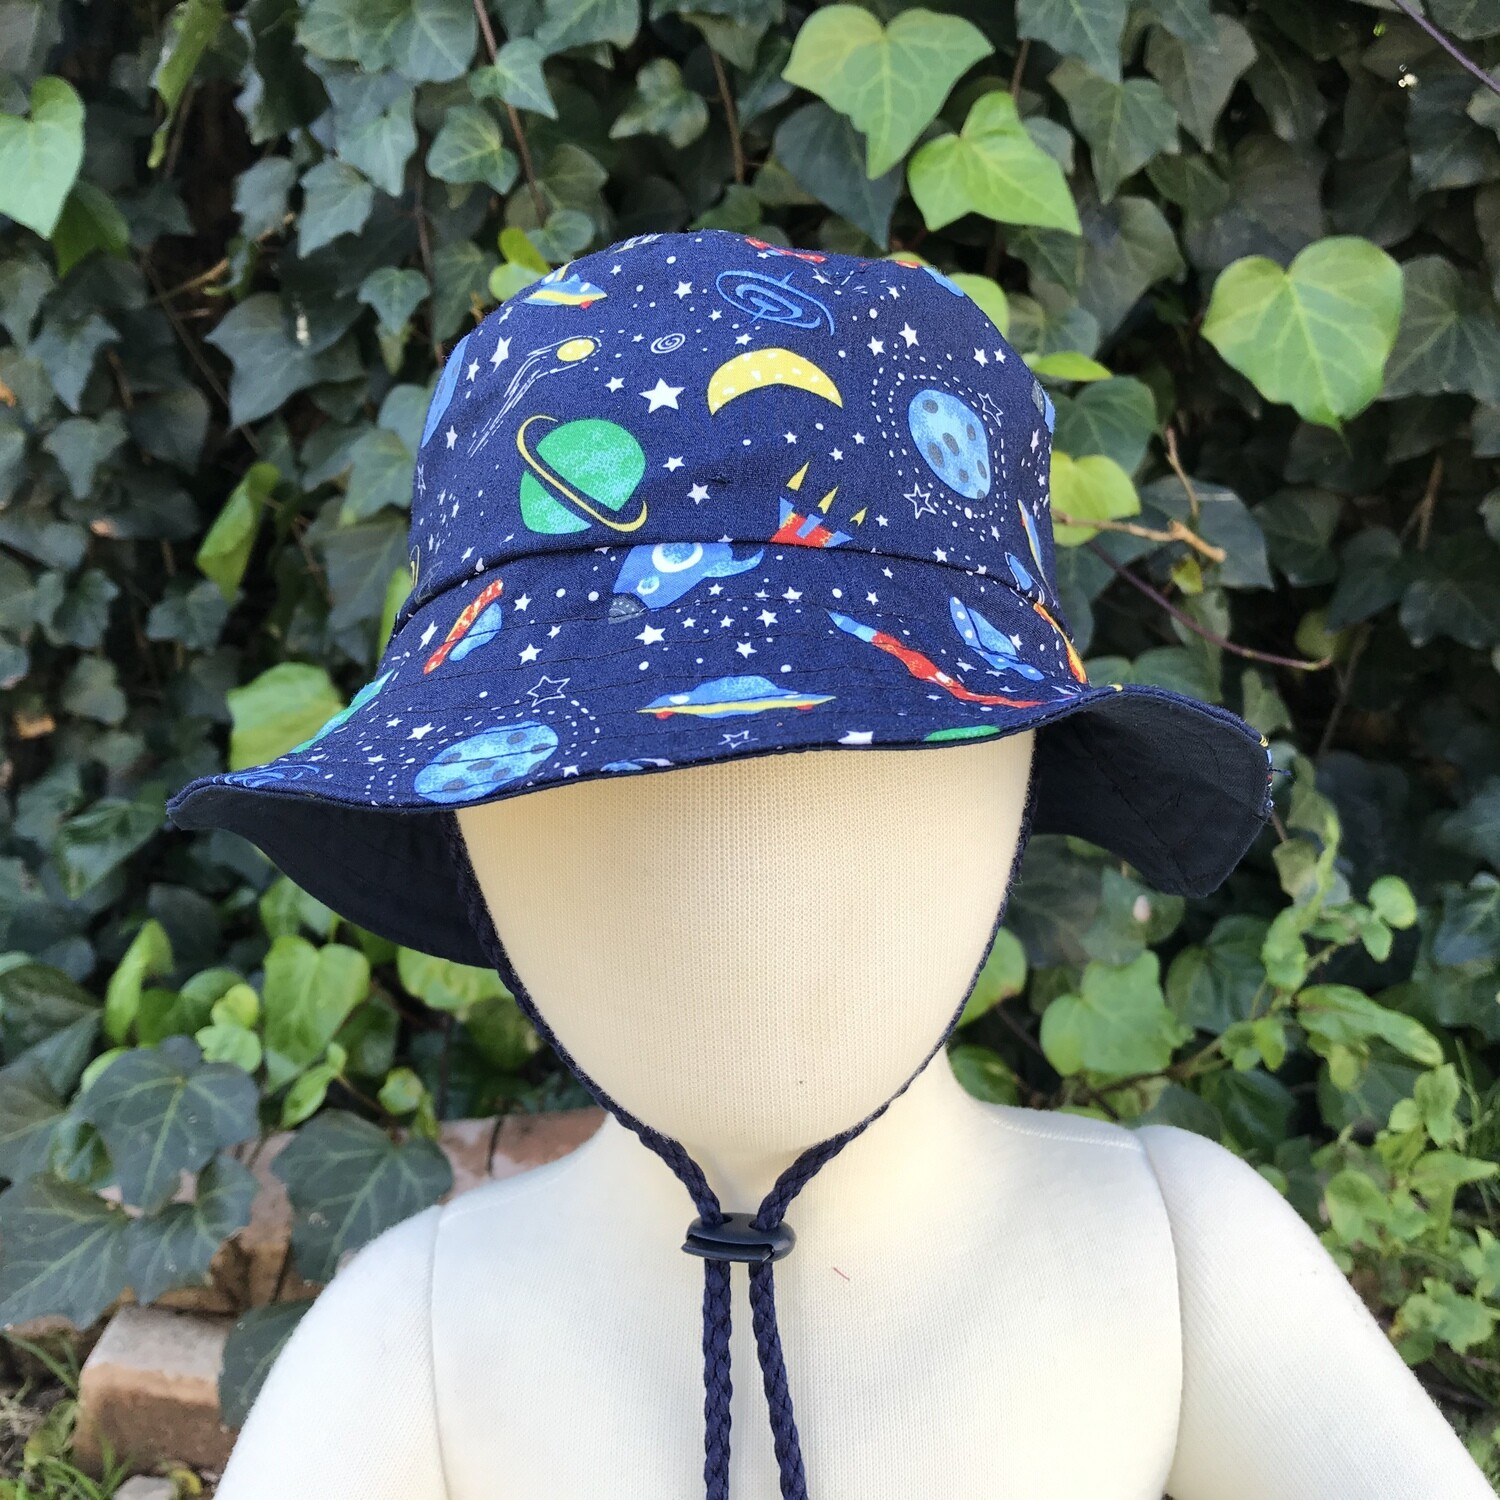 Space bucket hat